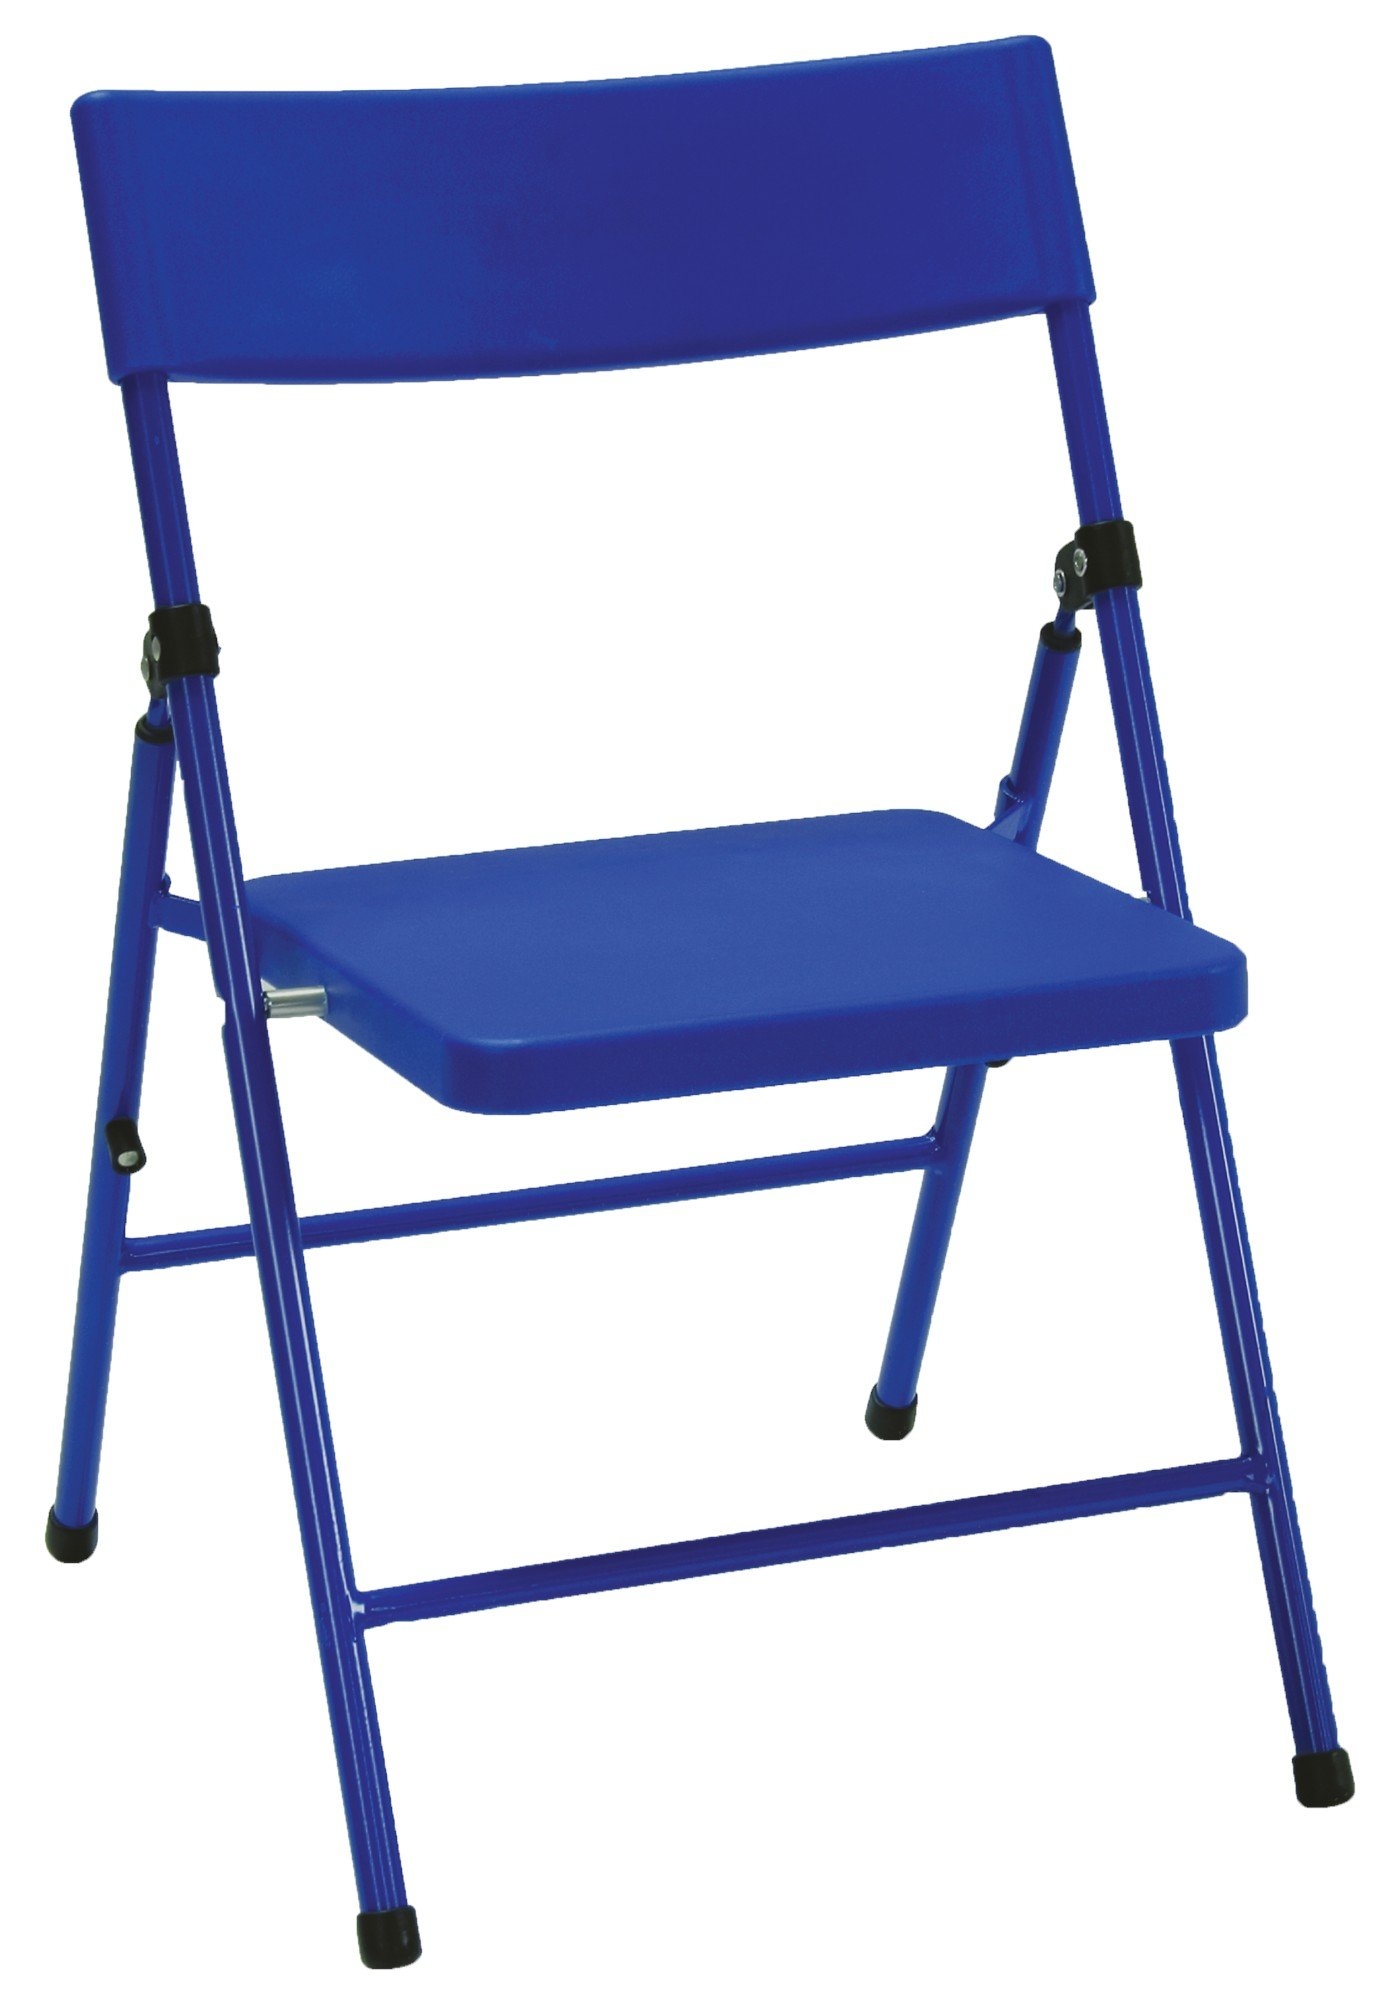 Safety First by COSCO Children's Pinch-Free Folding Chair, Blue, (4-pack) by Cosco